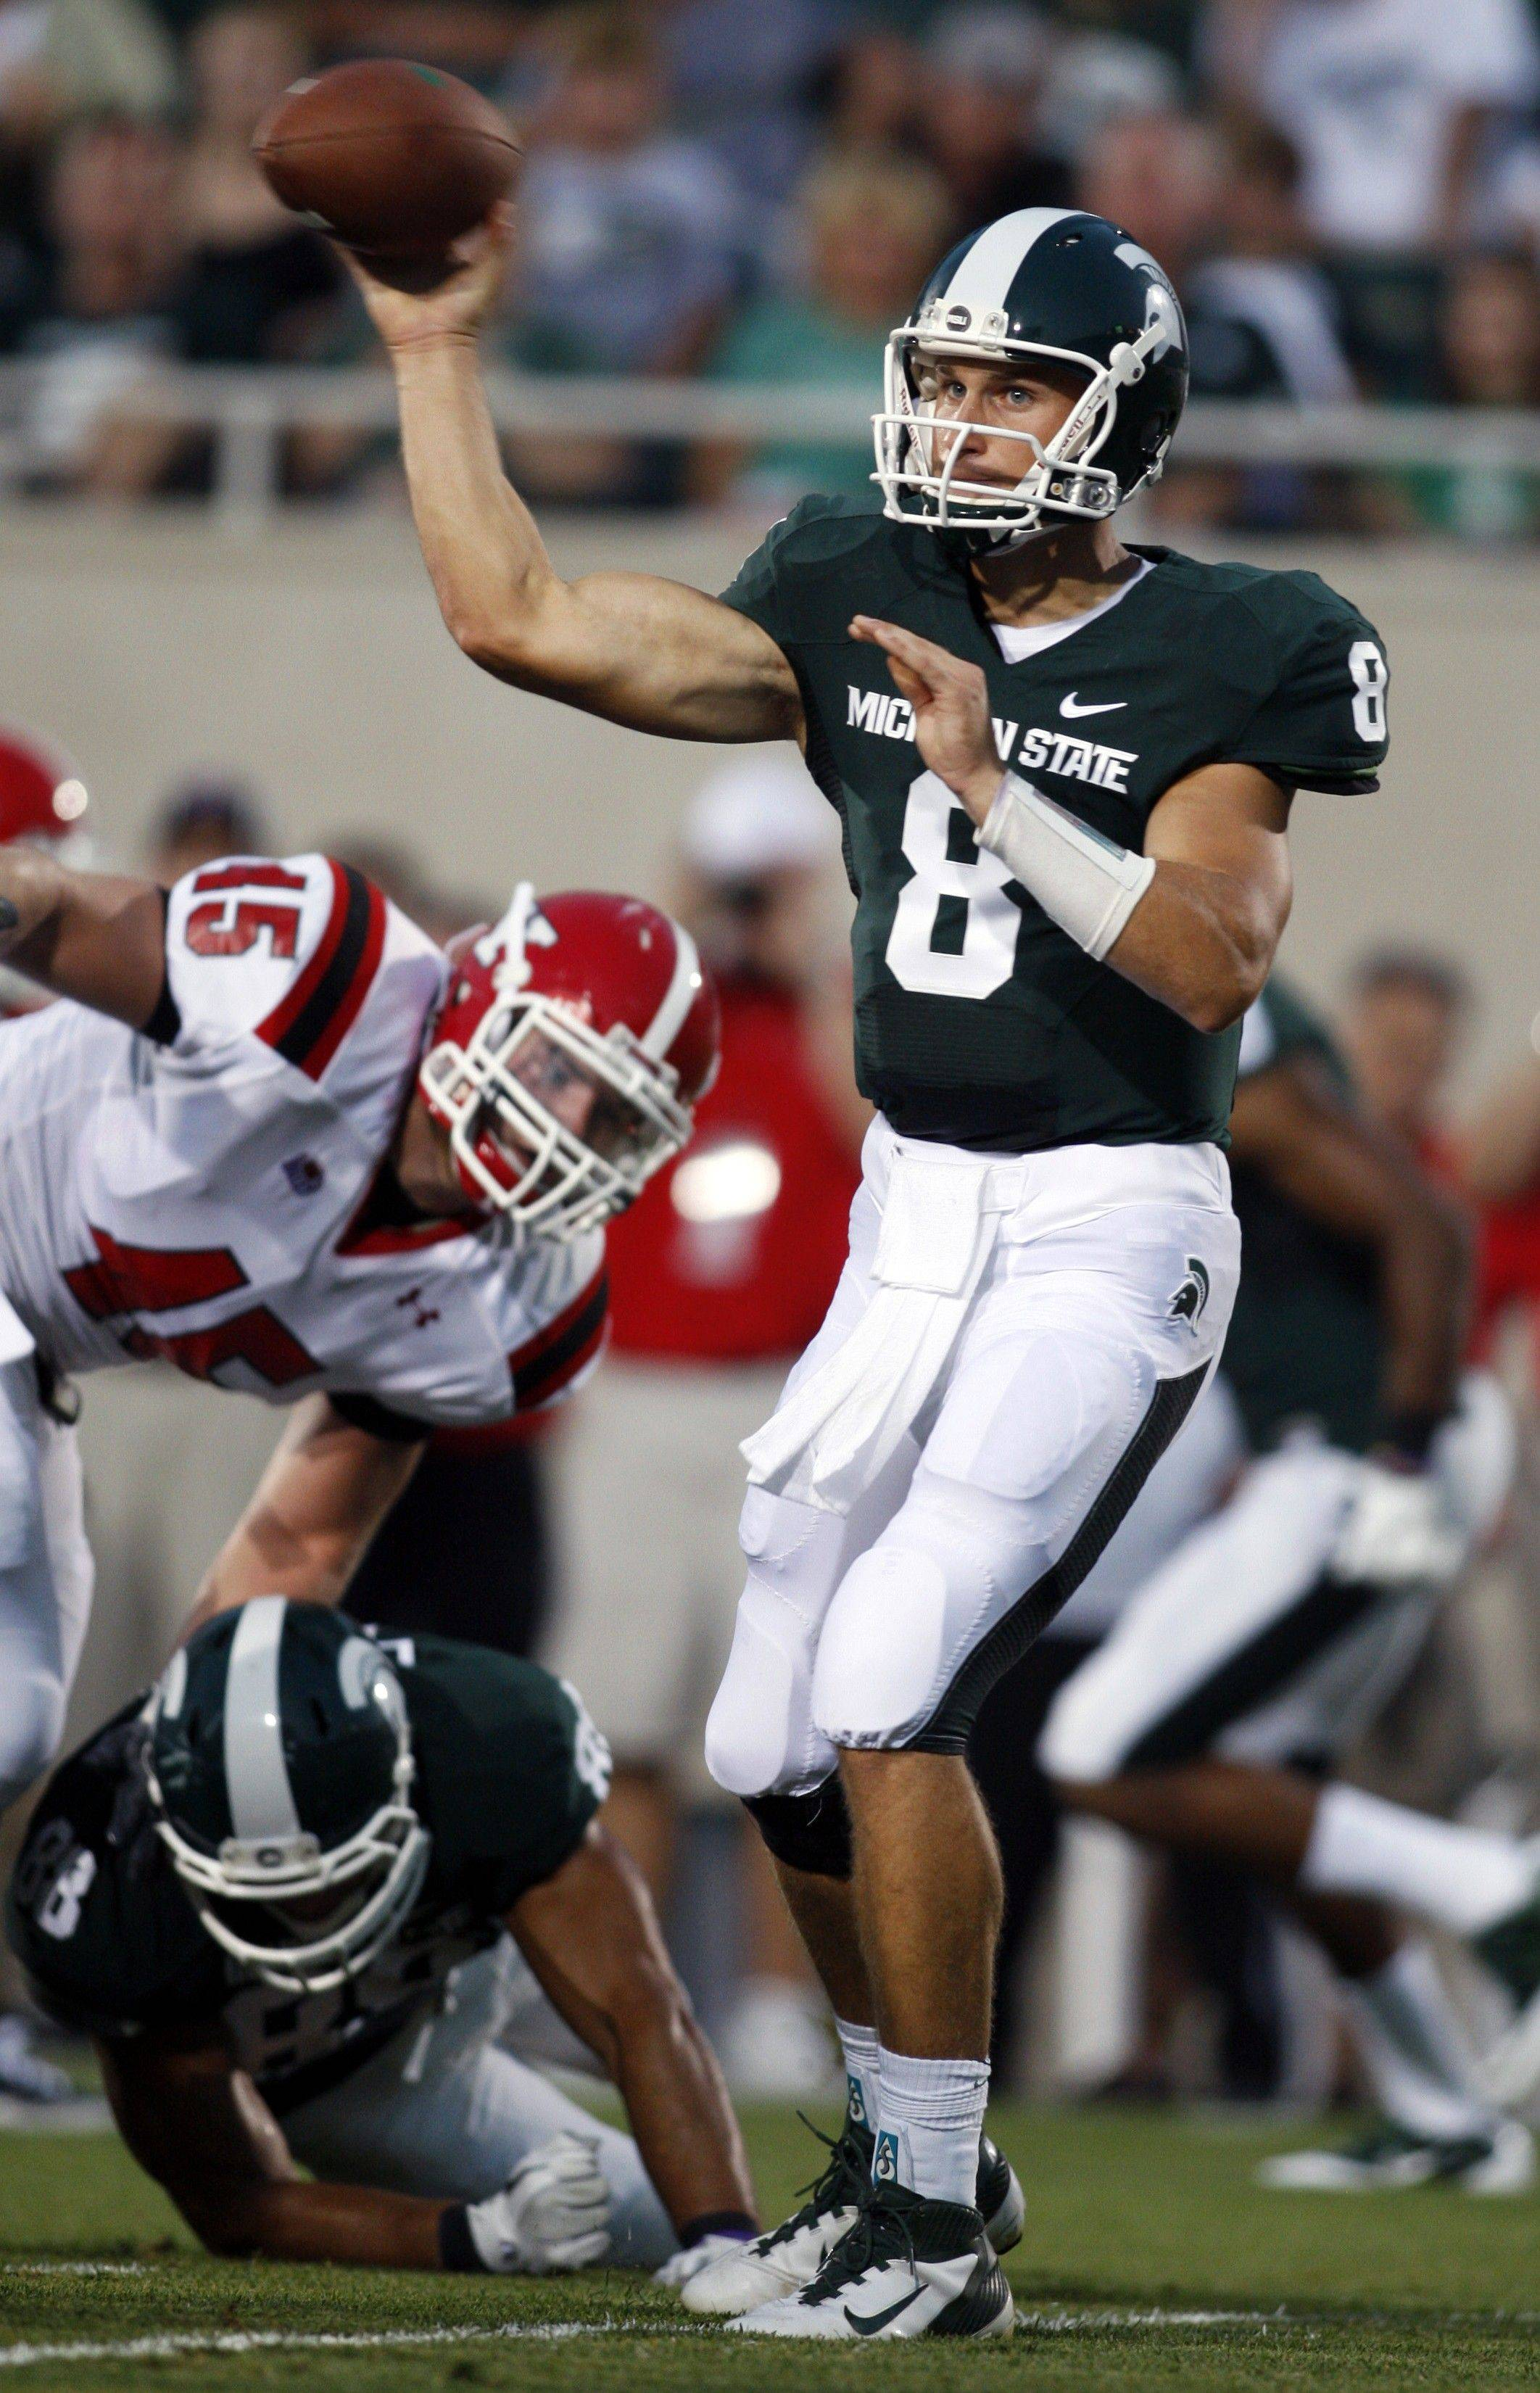 Michigan State quarterback Kirk Cousins, who grew up in Barrington before moving to Michigan, throws a pass against Youngstown State during the Spartans� season opener Friday night.